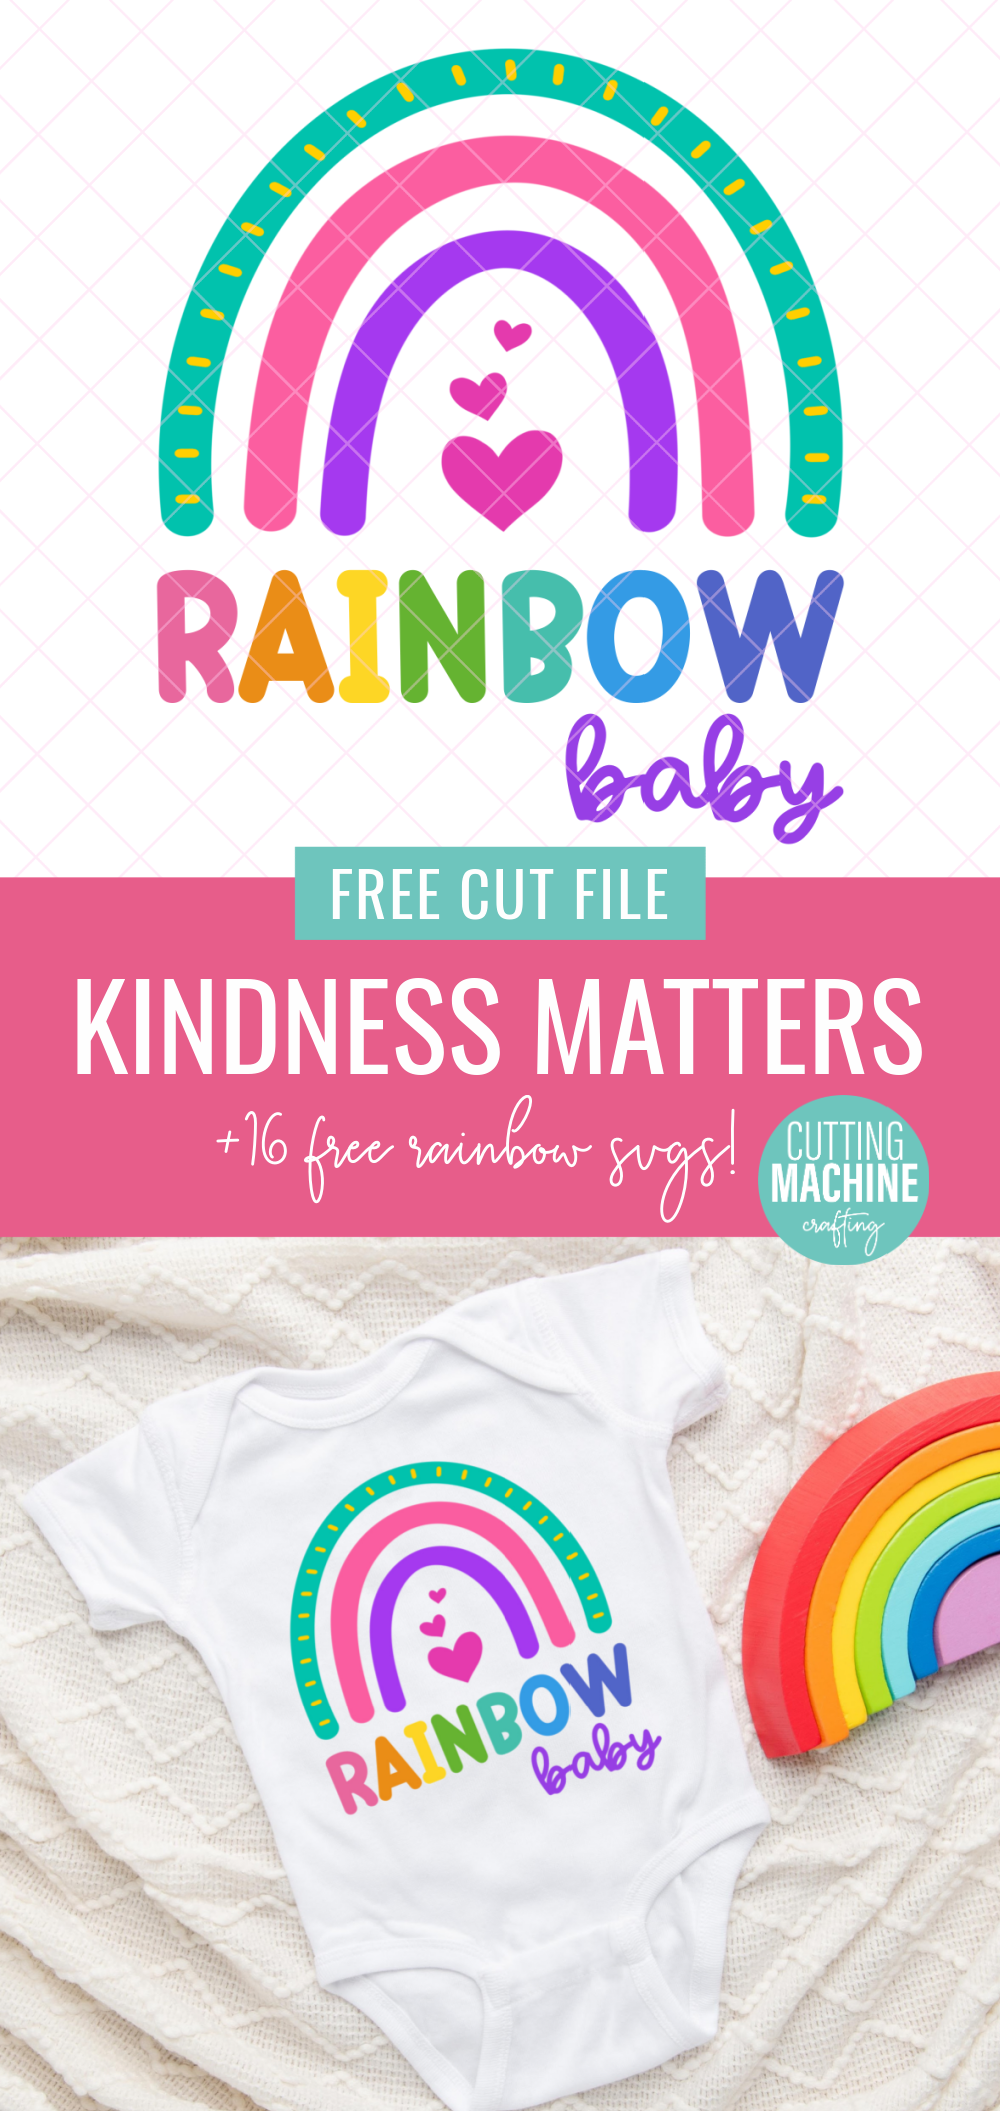 Celebrate pregnancy and childbirth after a loss with this beautiful Rainbow Baby SVG. Perfect for making DIY onesies with your Cricut or SIlhouette. Includes links to 16 free rainbow cut files. #rainbowbaby #miscarriage #infantloss #cricut #Silhouette #CricutMade #CricutCreated #DIY #CuttingMachineCrafting #onesie #DIYOnesie